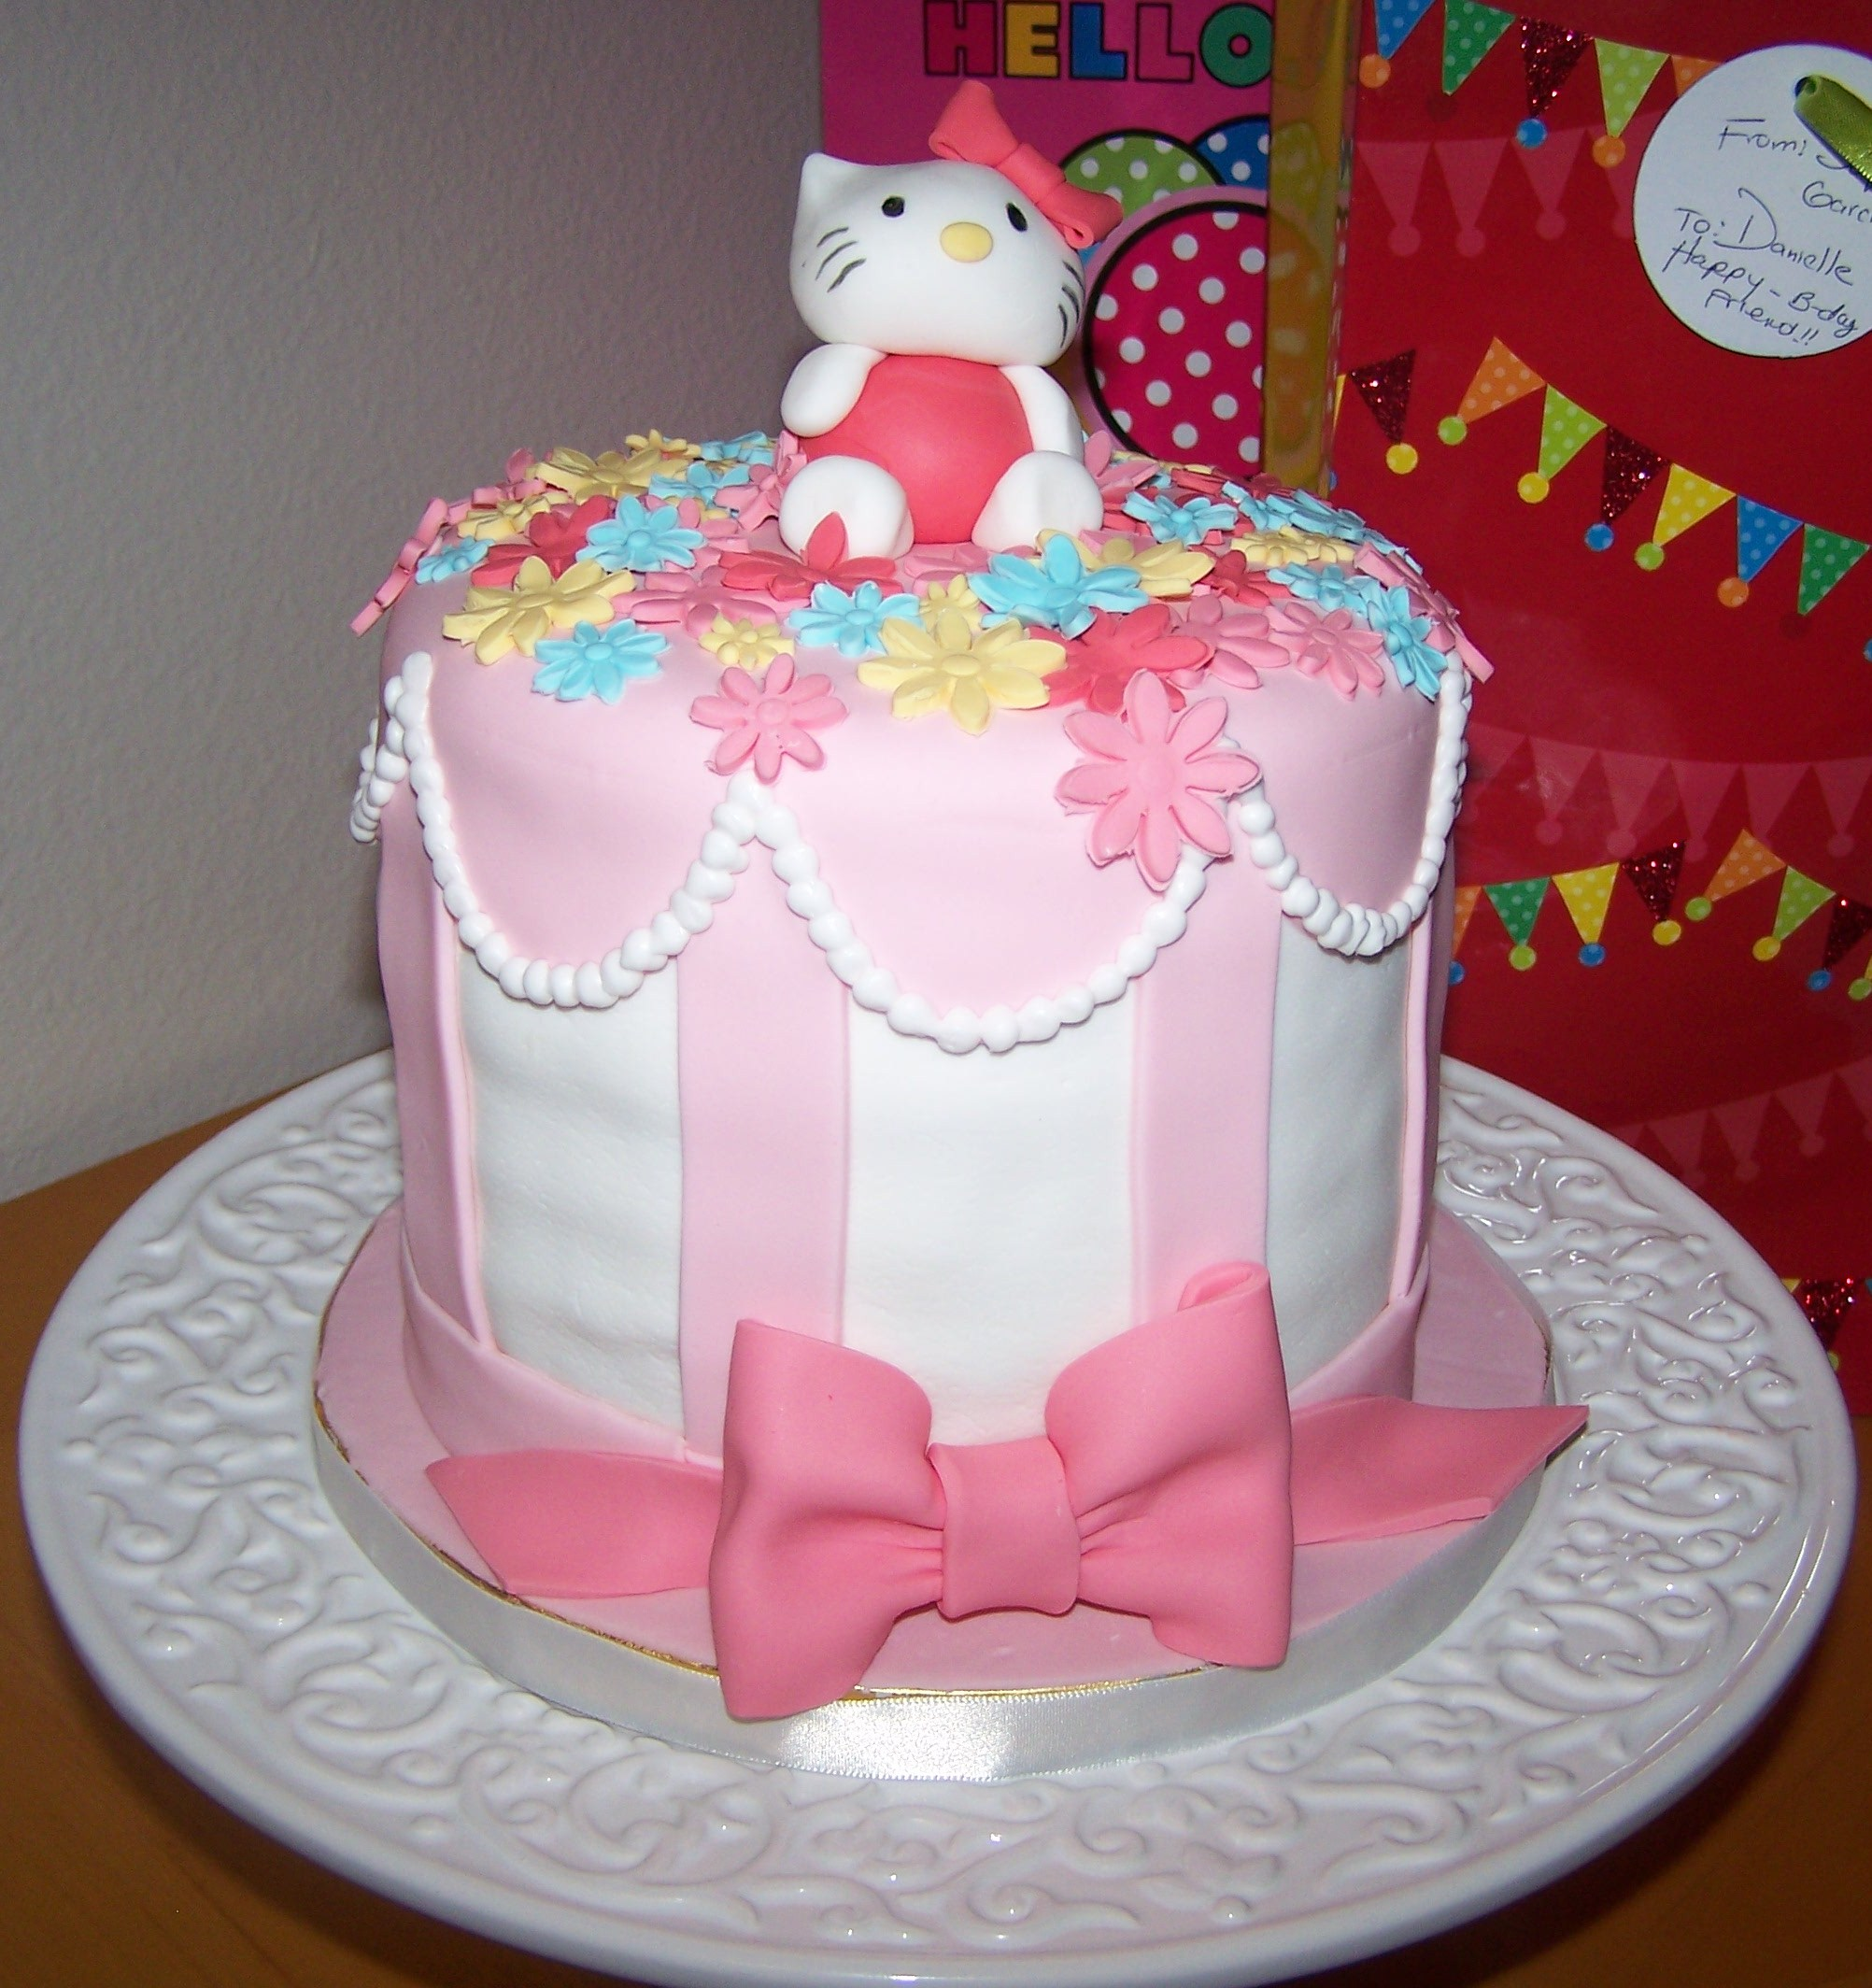 Decorated Cake with Air Bubbles